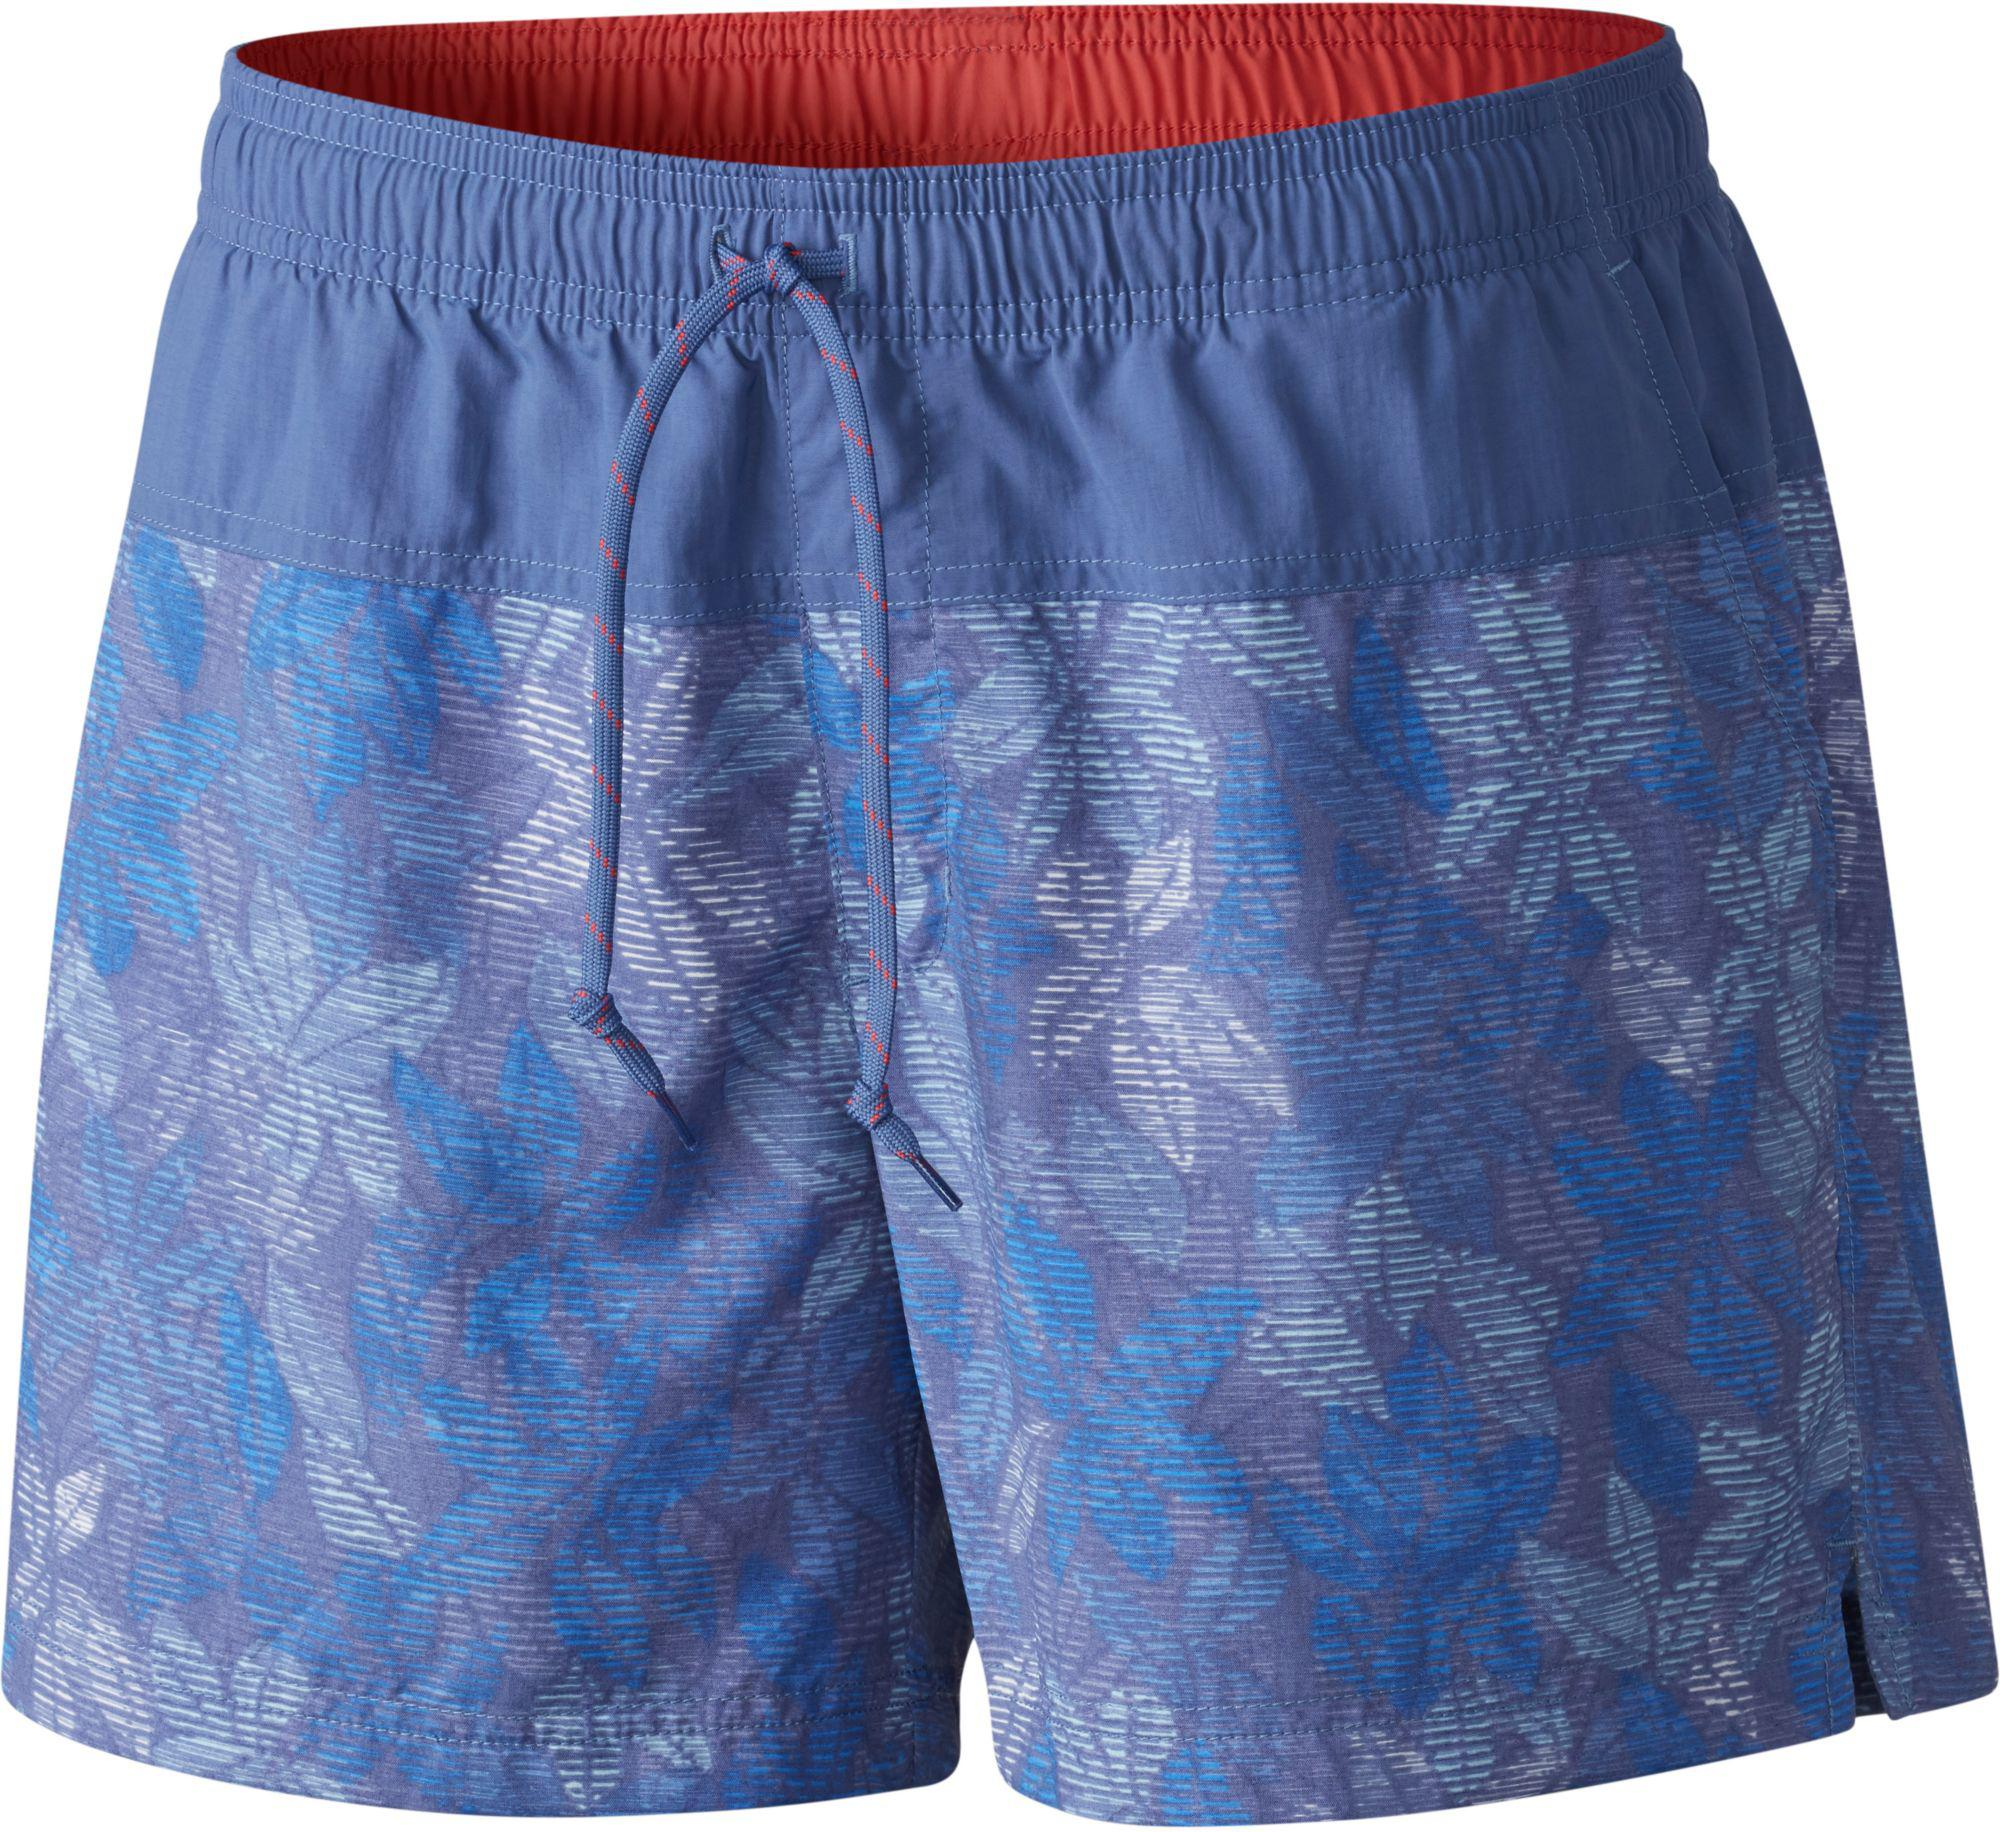 6e762ad58d Lyst - Columbia Sandy River Printed Shorts in Blue for Men